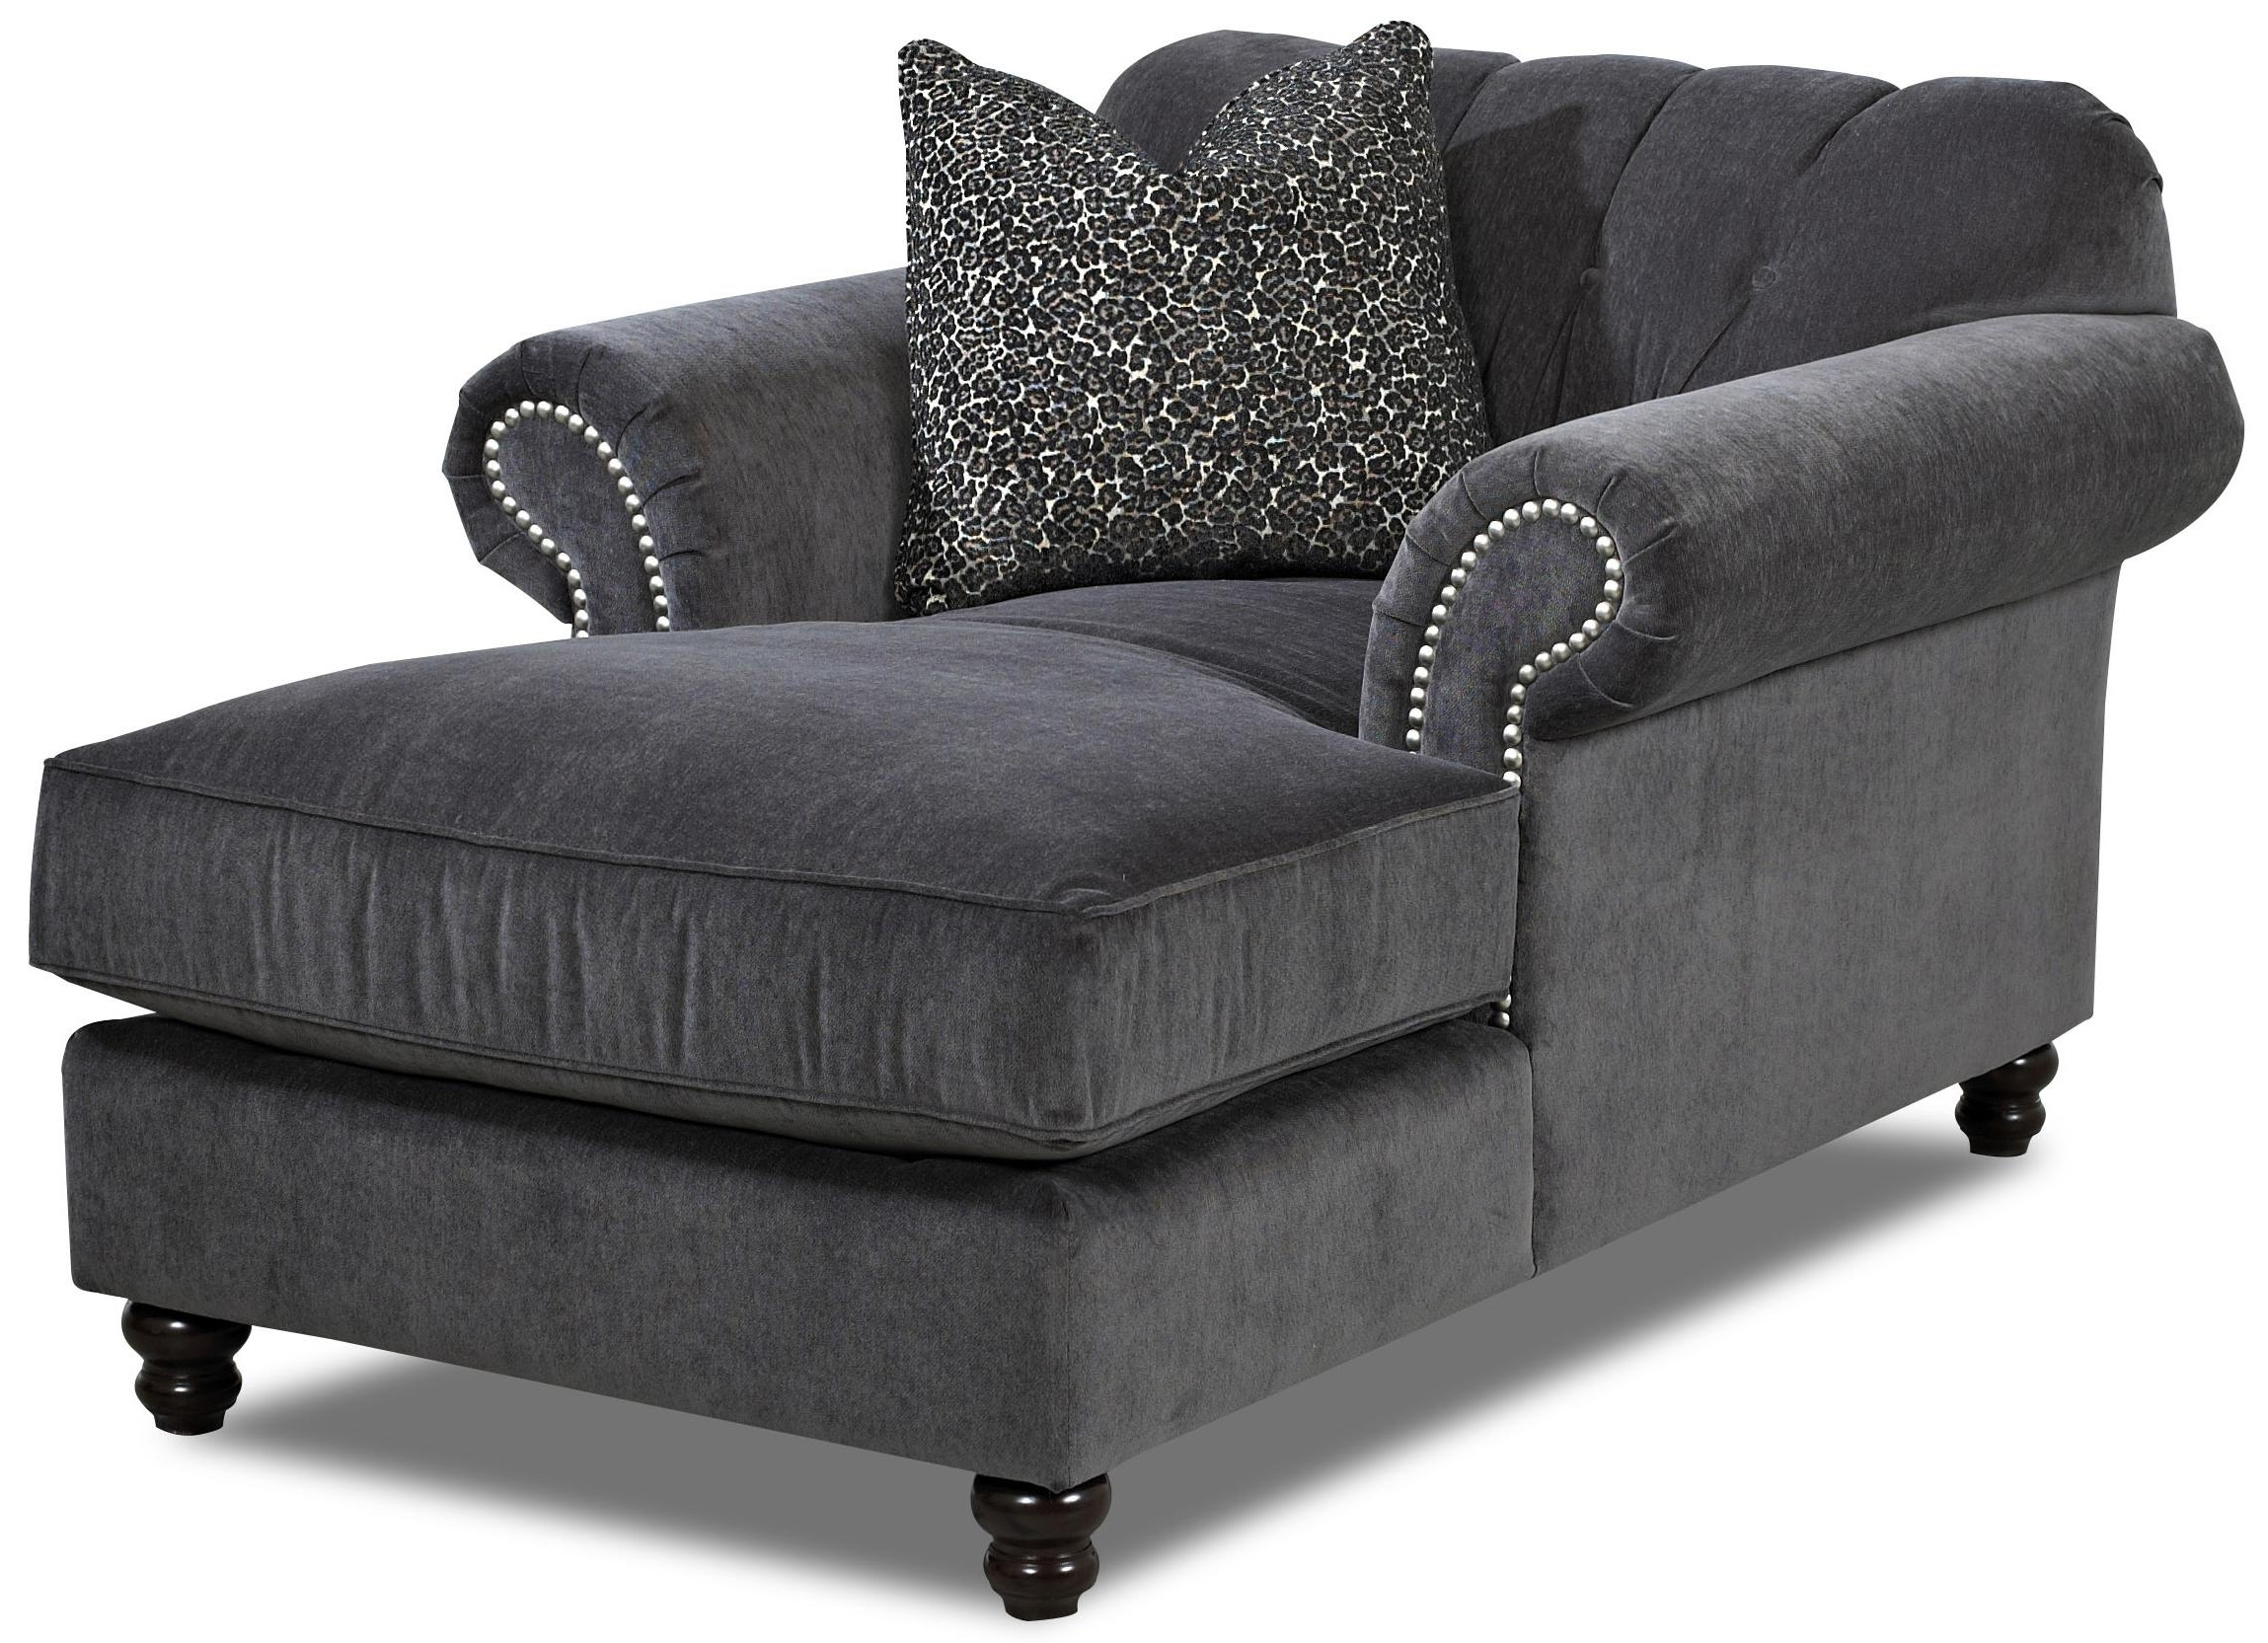 Grey Chaise Lounges With Newest Lounge Chair : Furniture Oversized Chaise Lounge Sofa Leather (View 5 of 15)